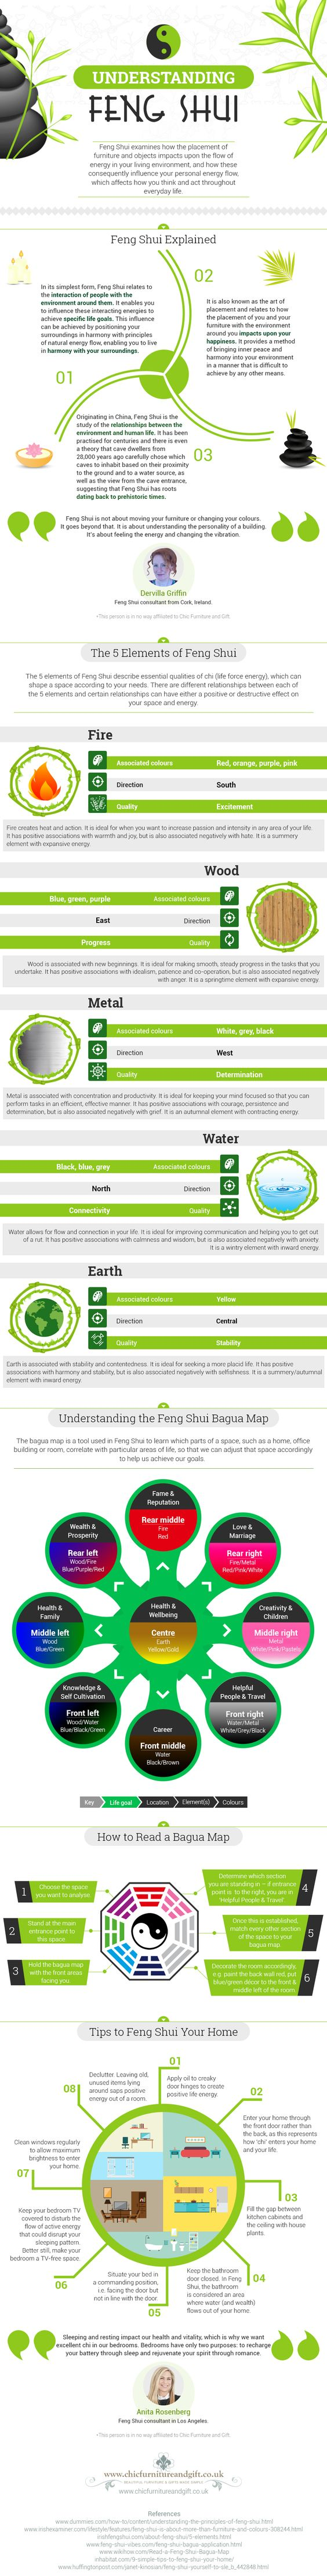 infographic feng shui elements and bagua map